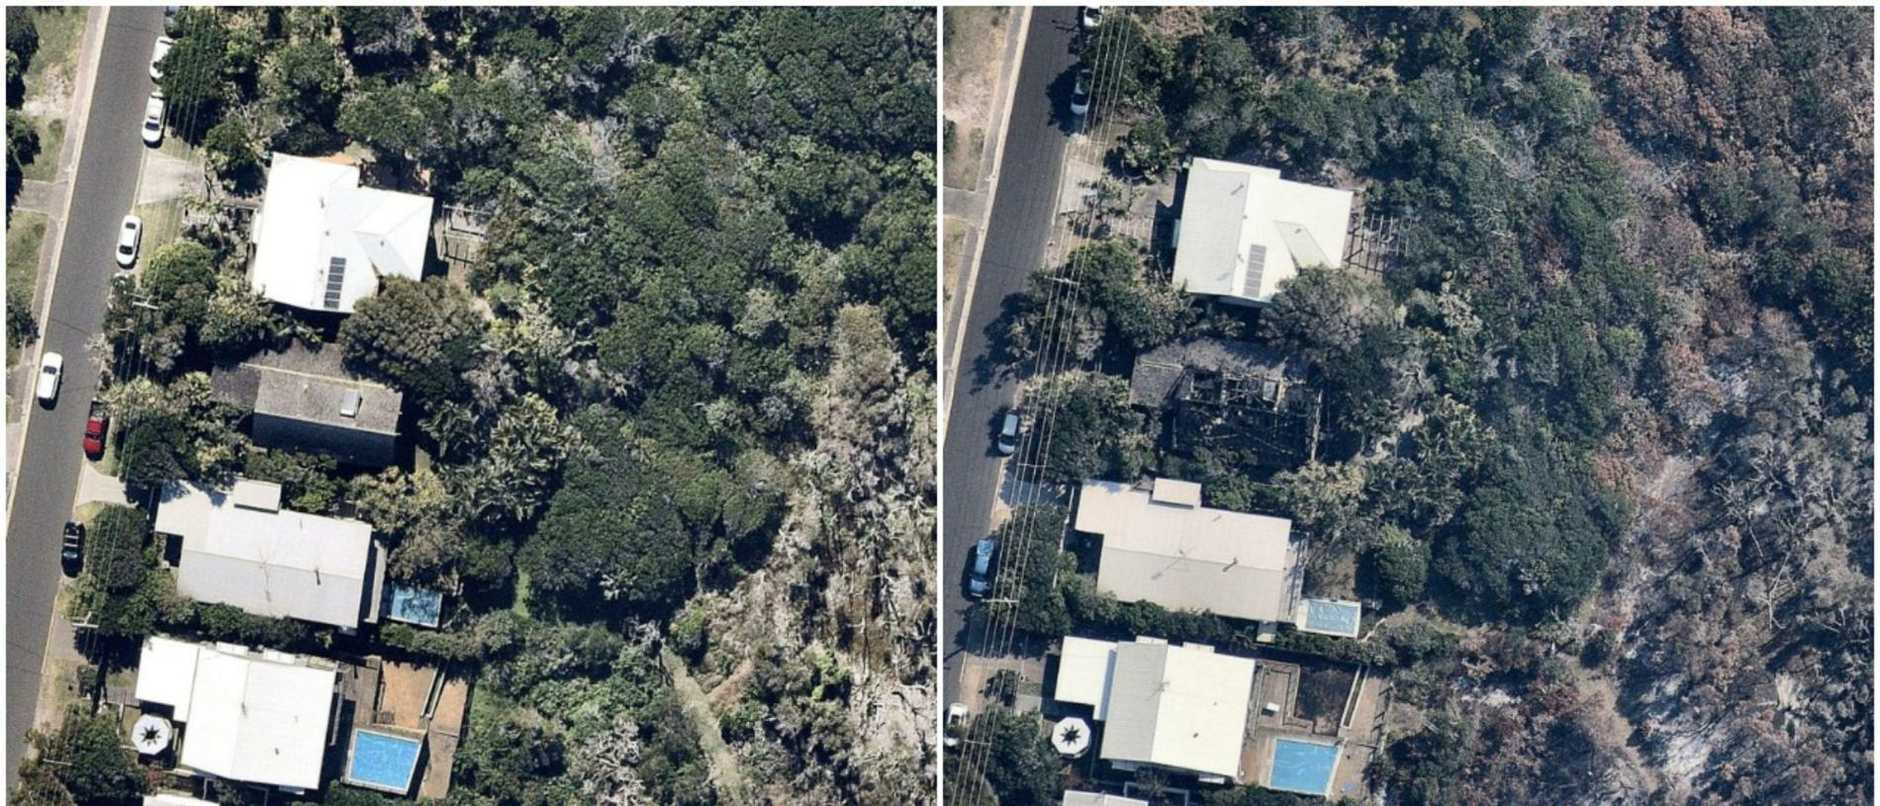 Peregian Beach fires before and after